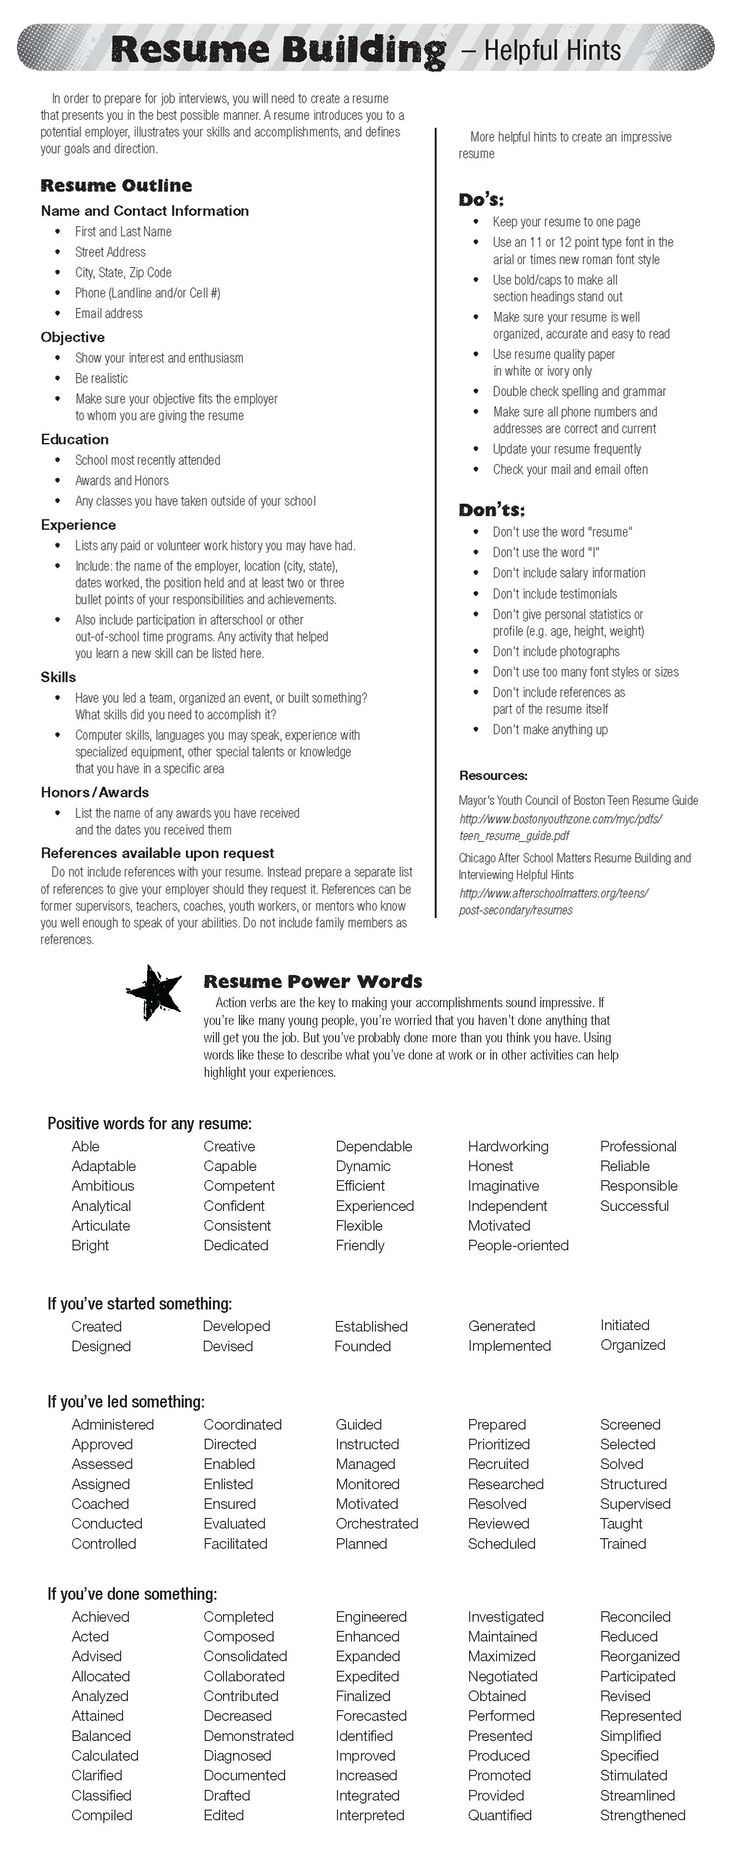 Opposenewapstandardsus  Remarkable  Ideas About Resume On Pinterest  Cv Format Resume Cv And  With Entrancing  Ideas About Resume On Pinterest  Cv Format Resume Cv And Resume Templates With Awesome Hostess Job Description For Resume Also Systems Engineer Resume In Addition Mba Application Resume And Career Builder Resume Search As Well As Professional Profile Resume Examples Additionally Library Assistant Resume From Pinterestcom With Opposenewapstandardsus  Entrancing  Ideas About Resume On Pinterest  Cv Format Resume Cv And  With Awesome  Ideas About Resume On Pinterest  Cv Format Resume Cv And Resume Templates And Remarkable Hostess Job Description For Resume Also Systems Engineer Resume In Addition Mba Application Resume From Pinterestcom